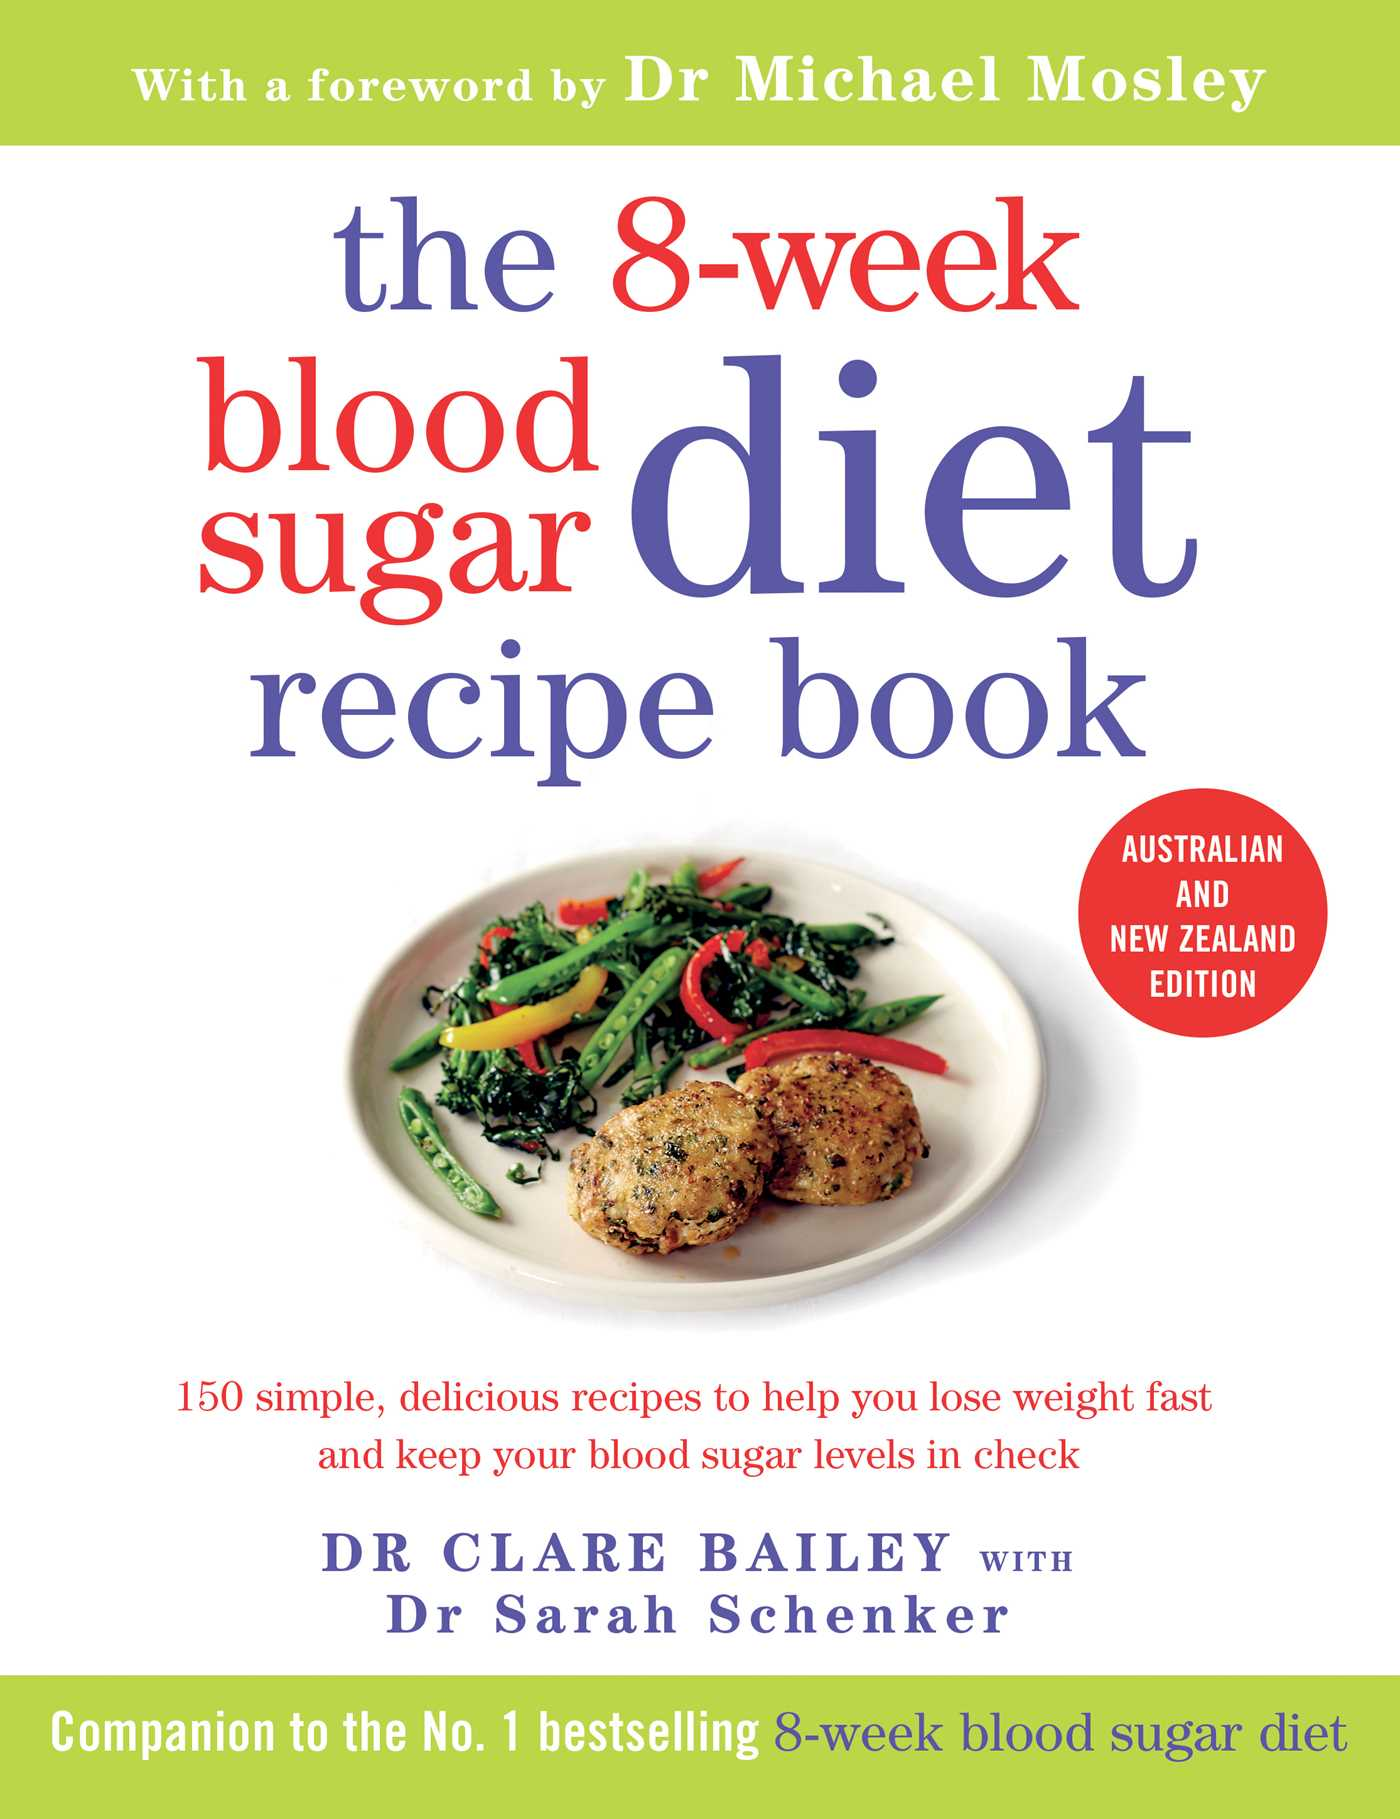 8 week blood sugar diet recipe book ebook by dr clare bailey dr book cover image jpg 8 week blood sugar diet recipe book forumfinder Images